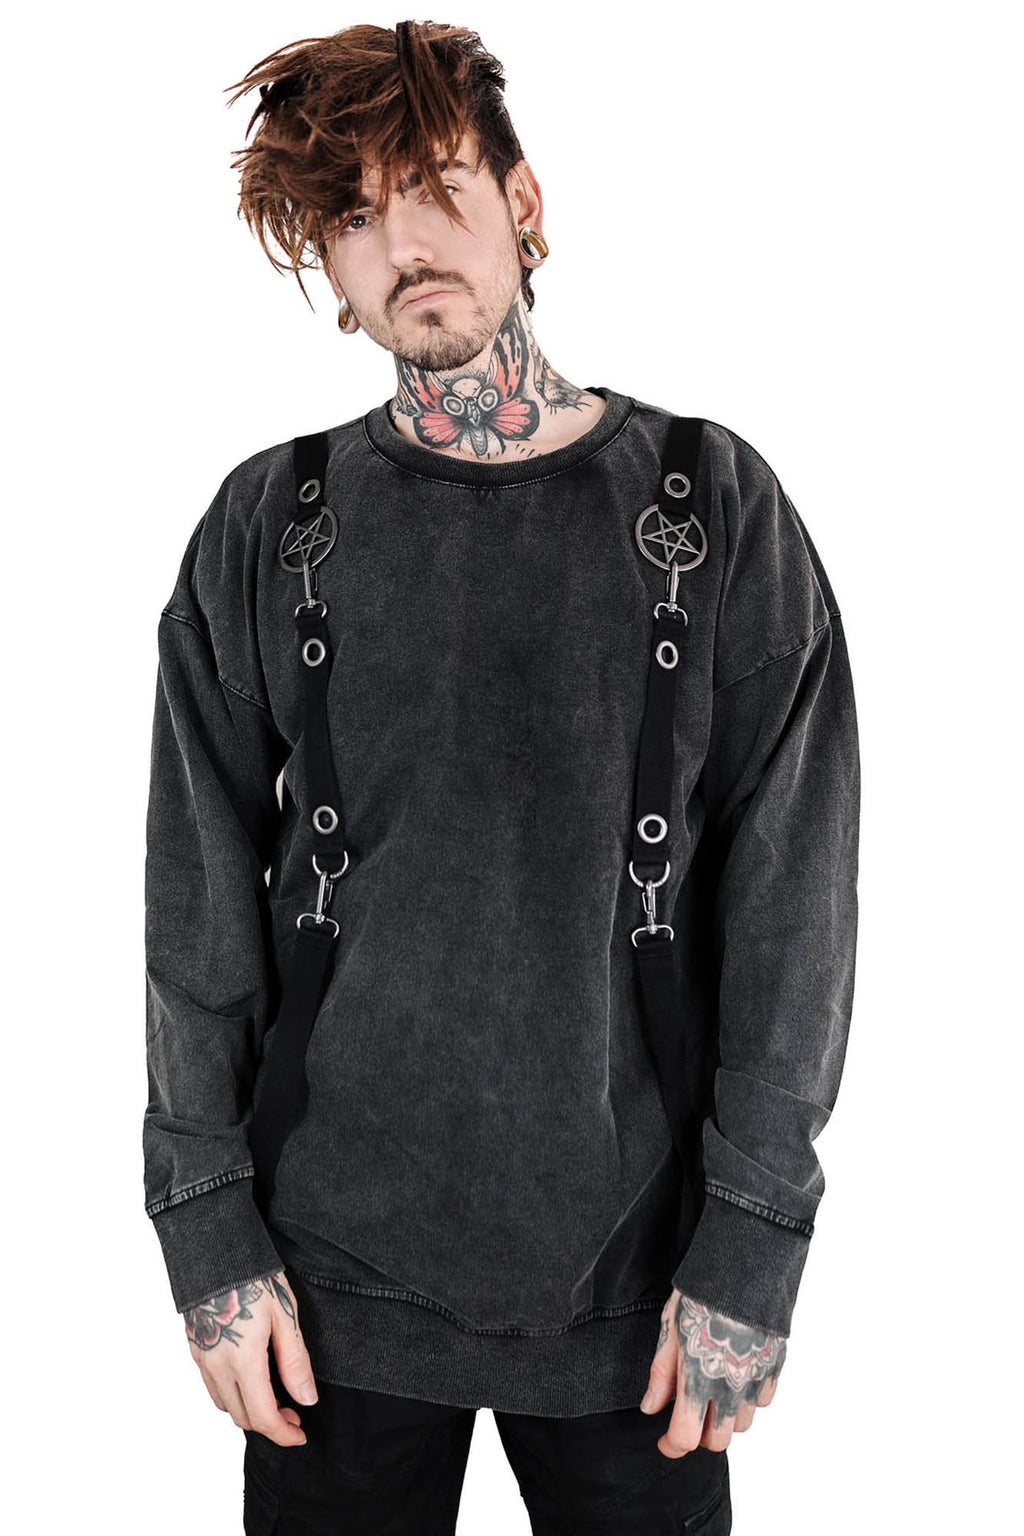 Killstar Vicious Vintage Wash Sweater